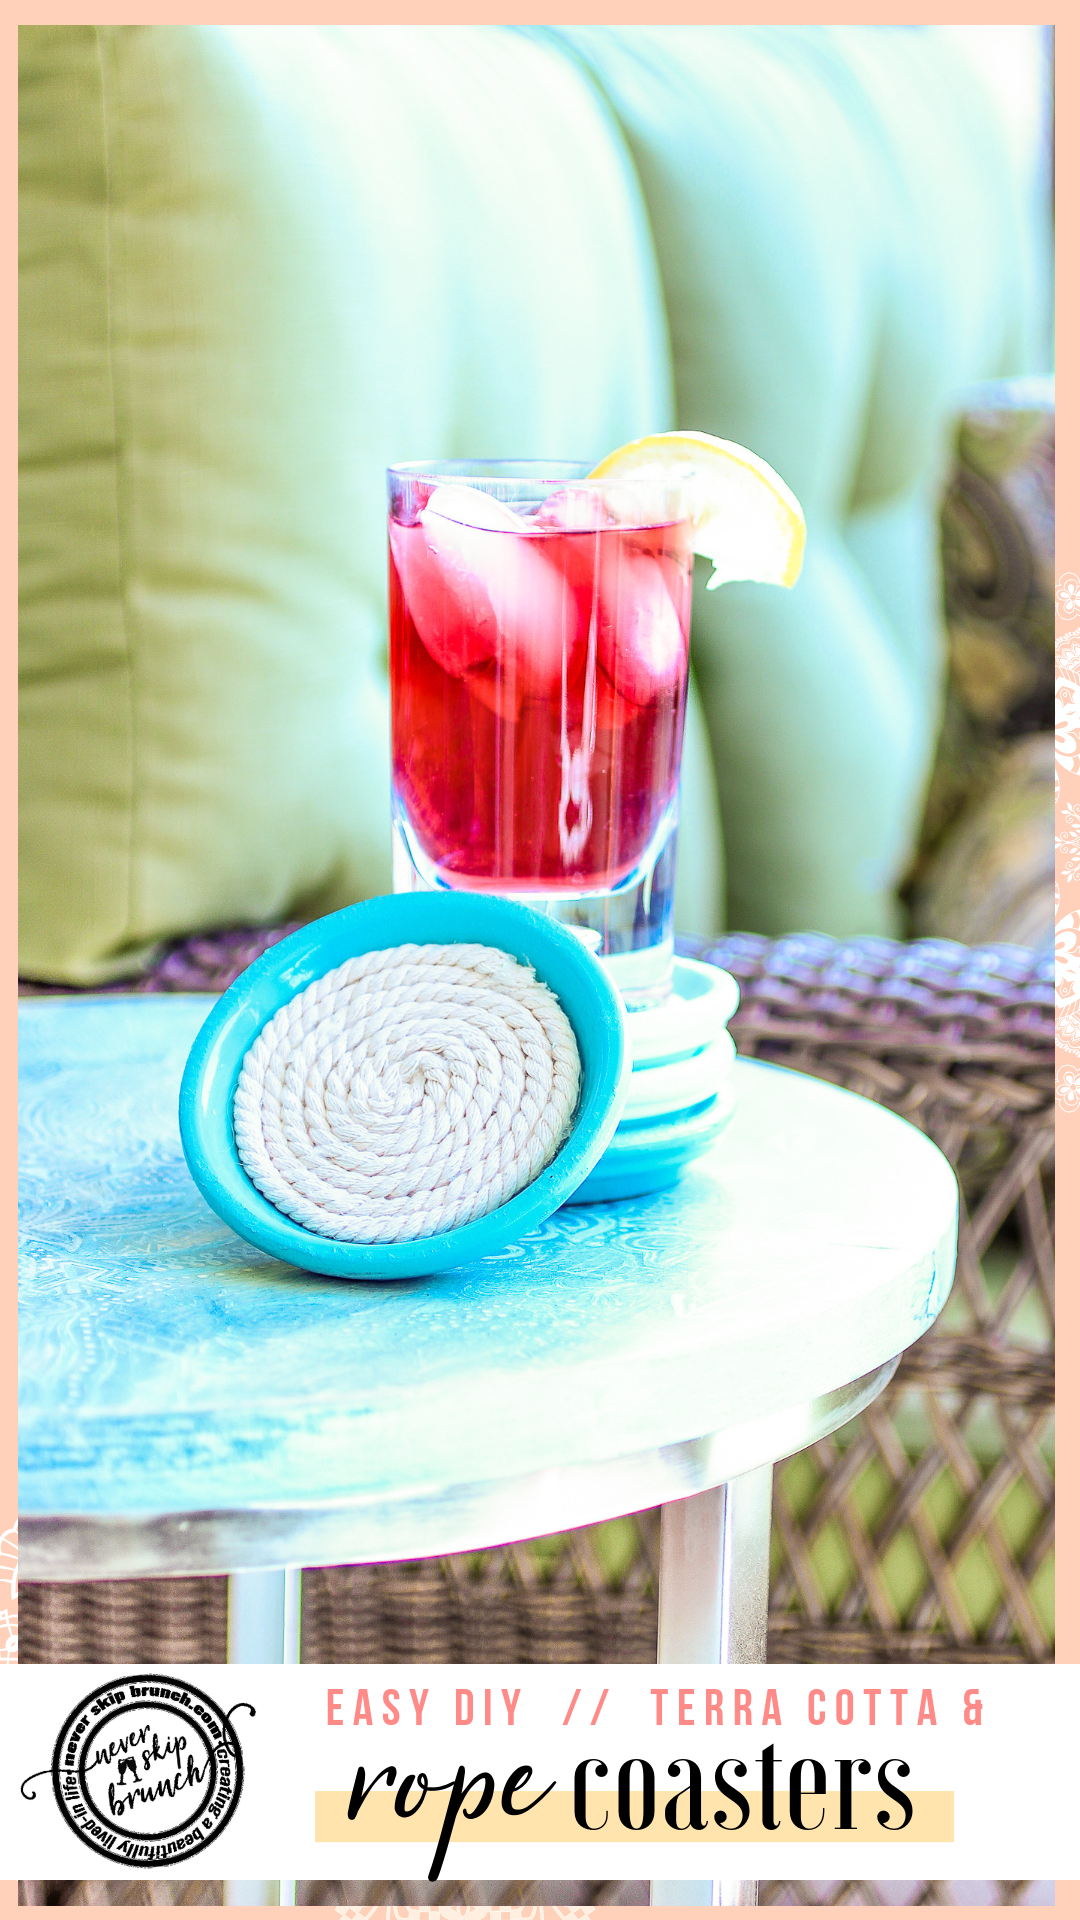 This easy diy project shows you how to make rope coasters with a glue gun that have a bottom | rope coasters home decor | rope coasters tutorials | Never Skip Brunch by Cara Newhart | #decor #diy #neverskipbrunch